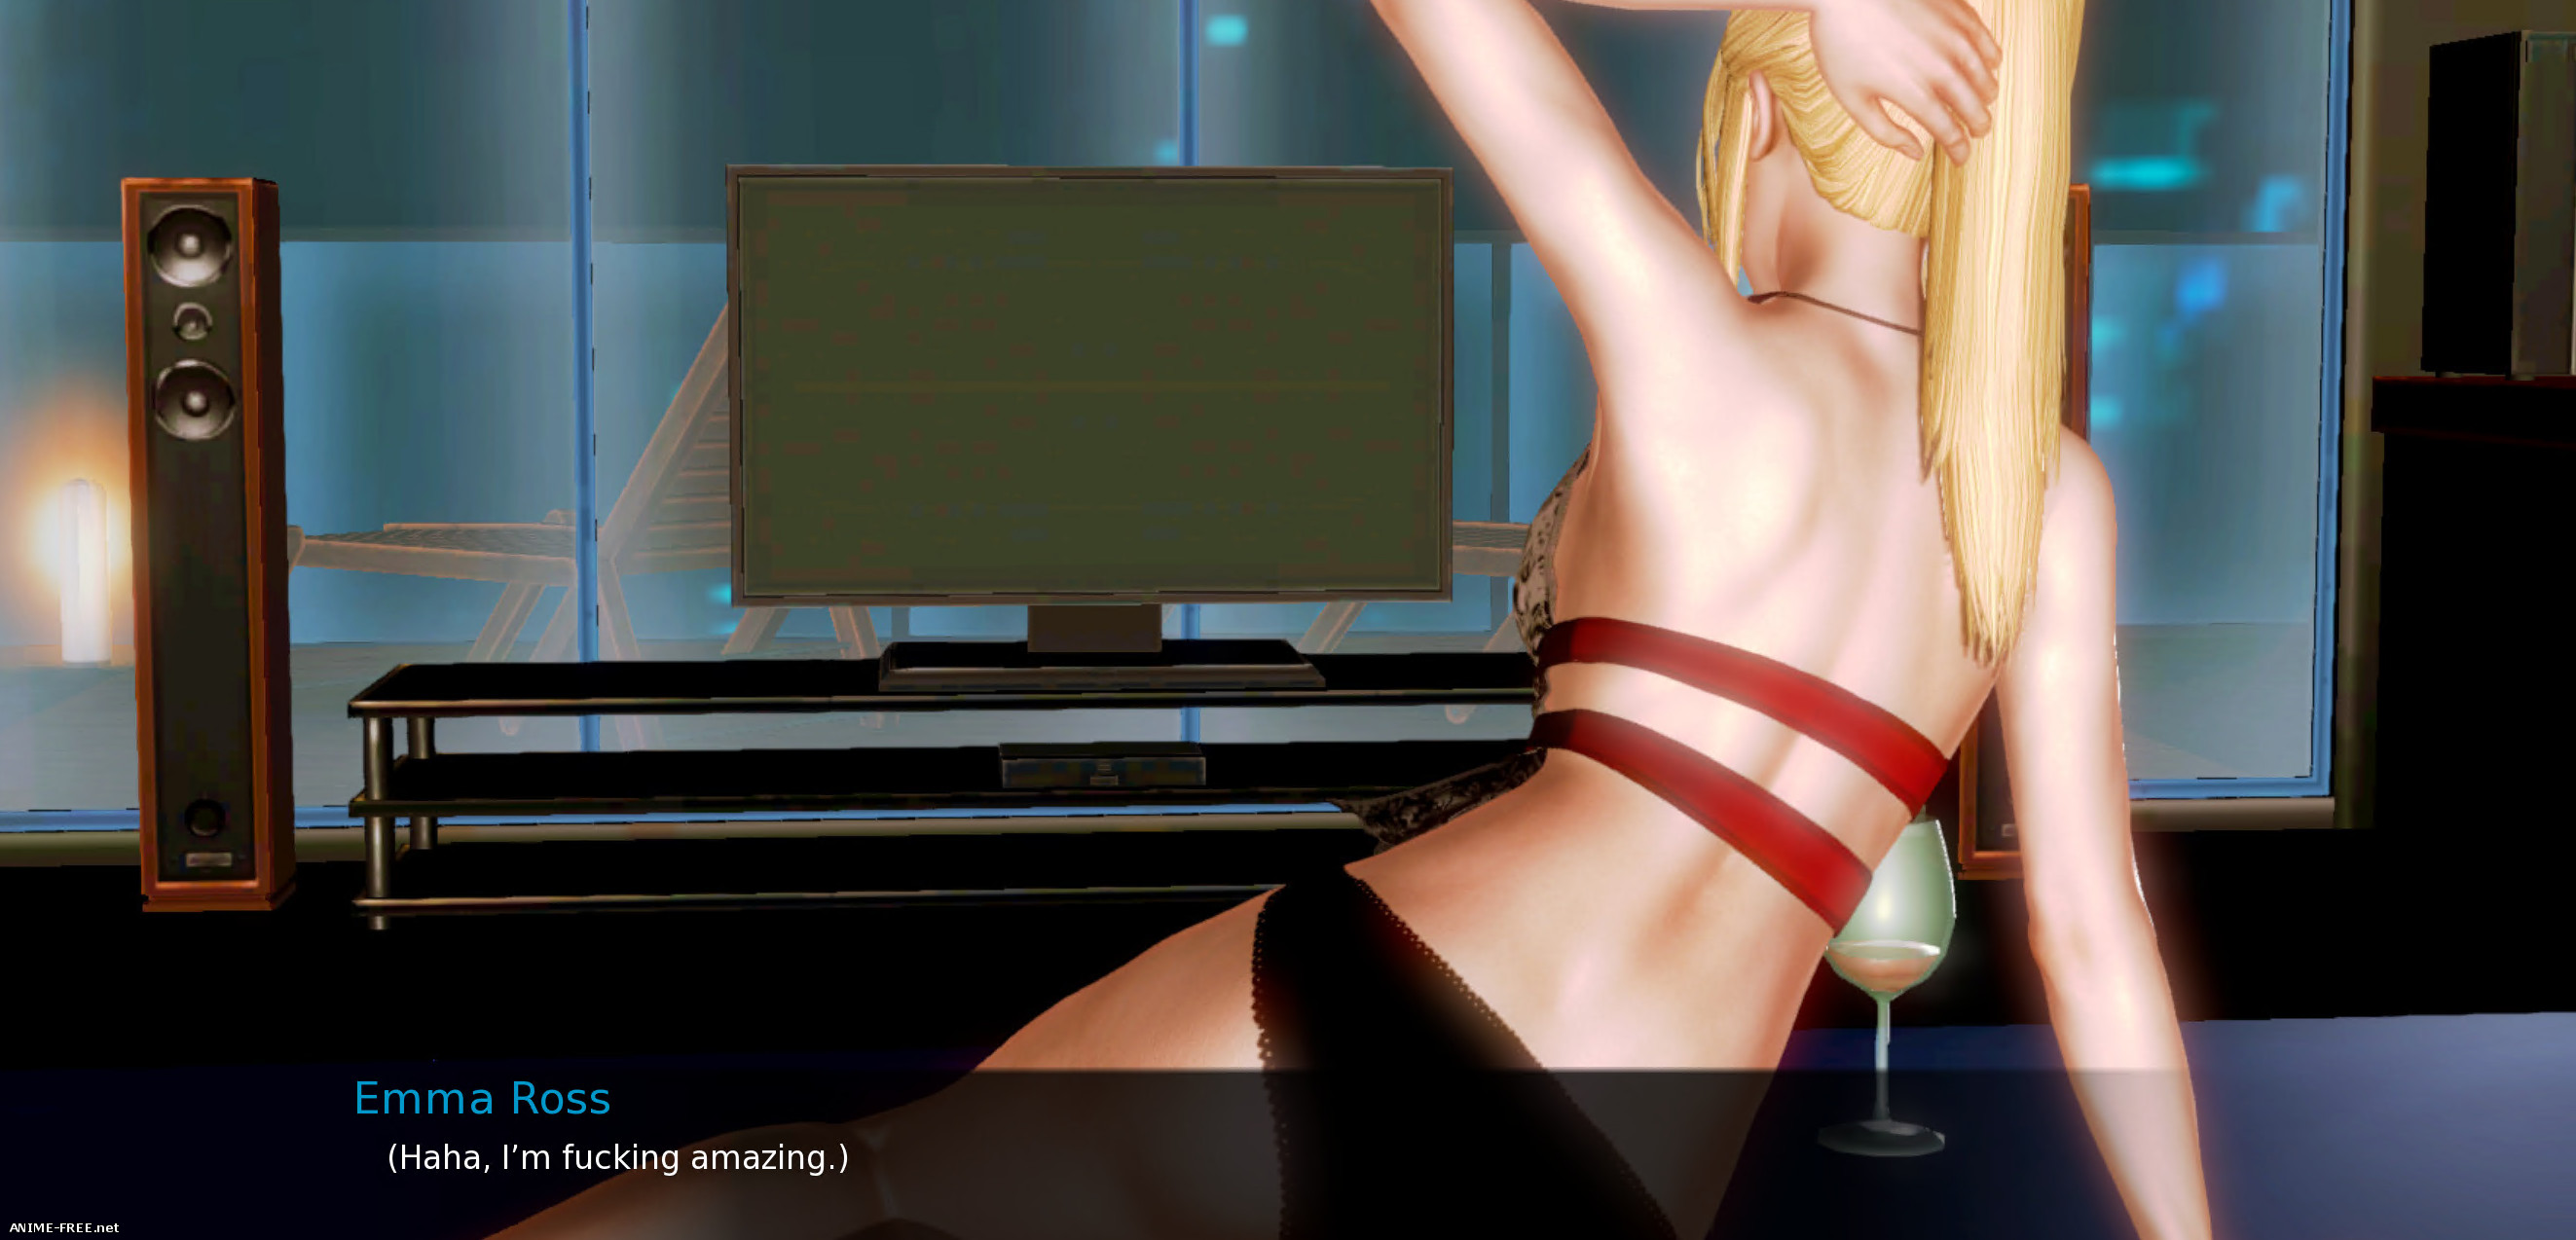 Адвокат / The Lawyer [2018] [Uncen] [ADV, 3DCG] [Android Compatible] [ENG] H-Game